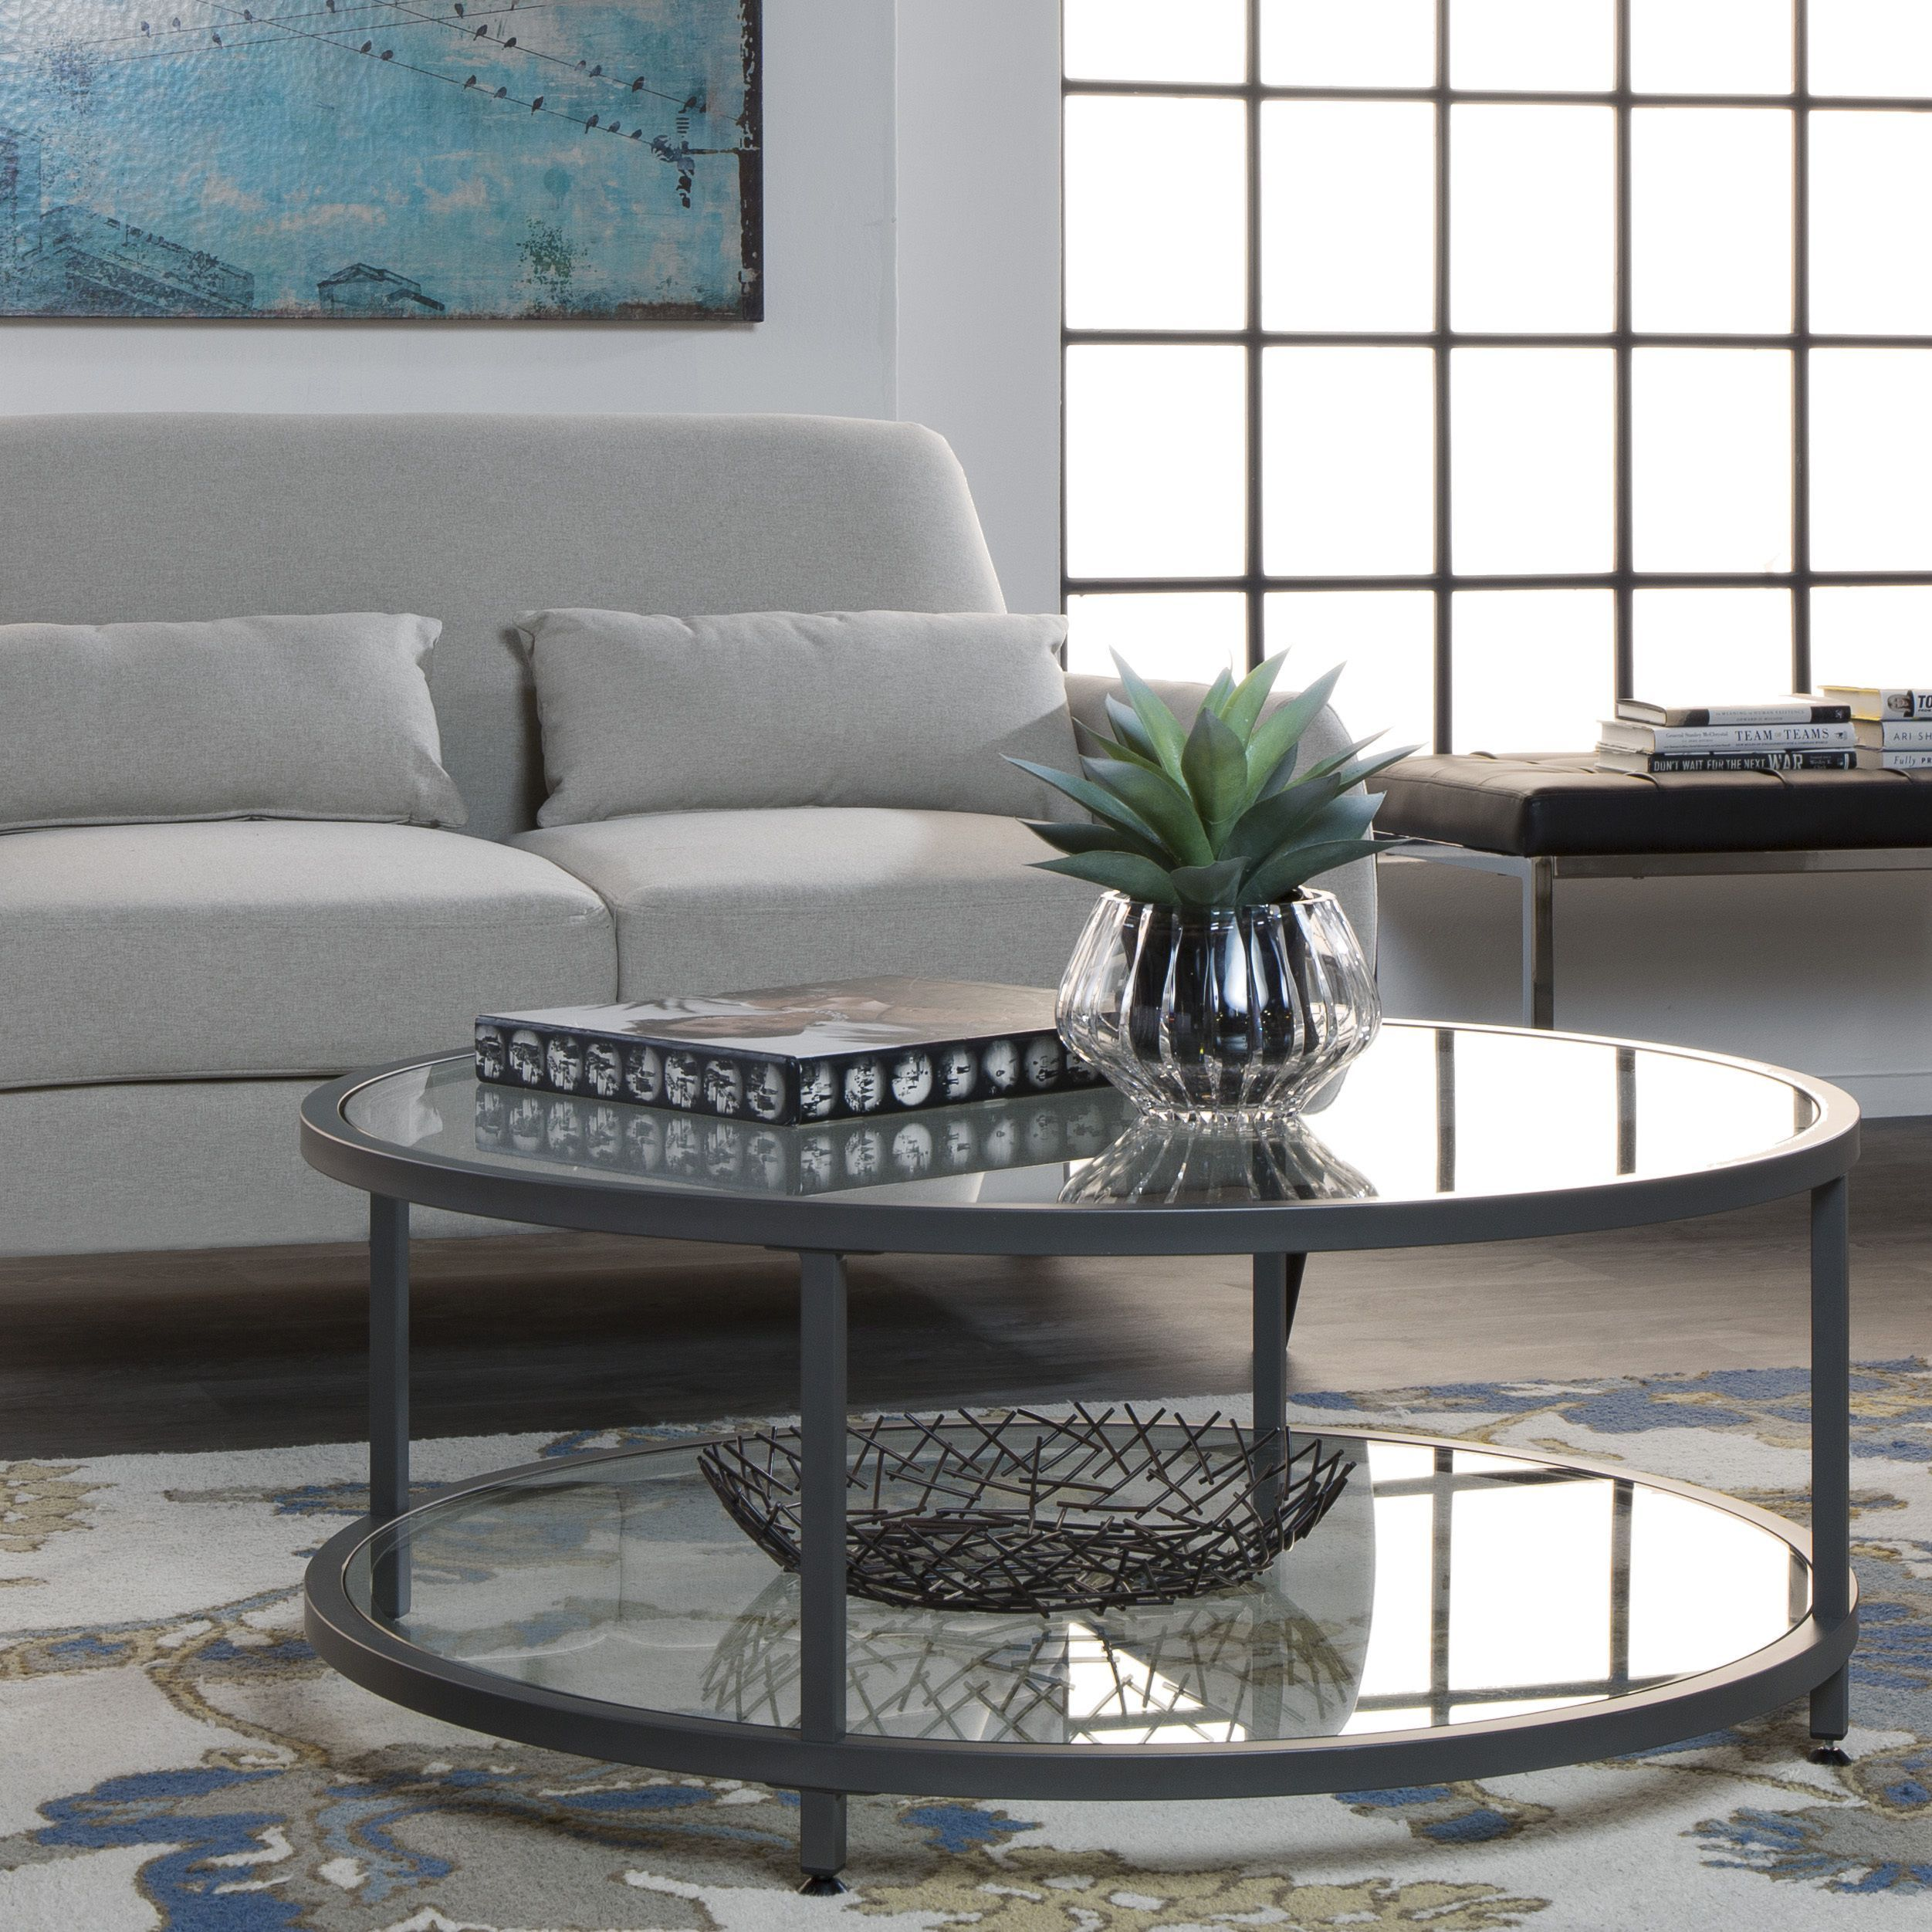 Studio designs home camber round coffee table overstock studio designs home camber round coffee table overstock shopping the best deals geotapseo Image collections